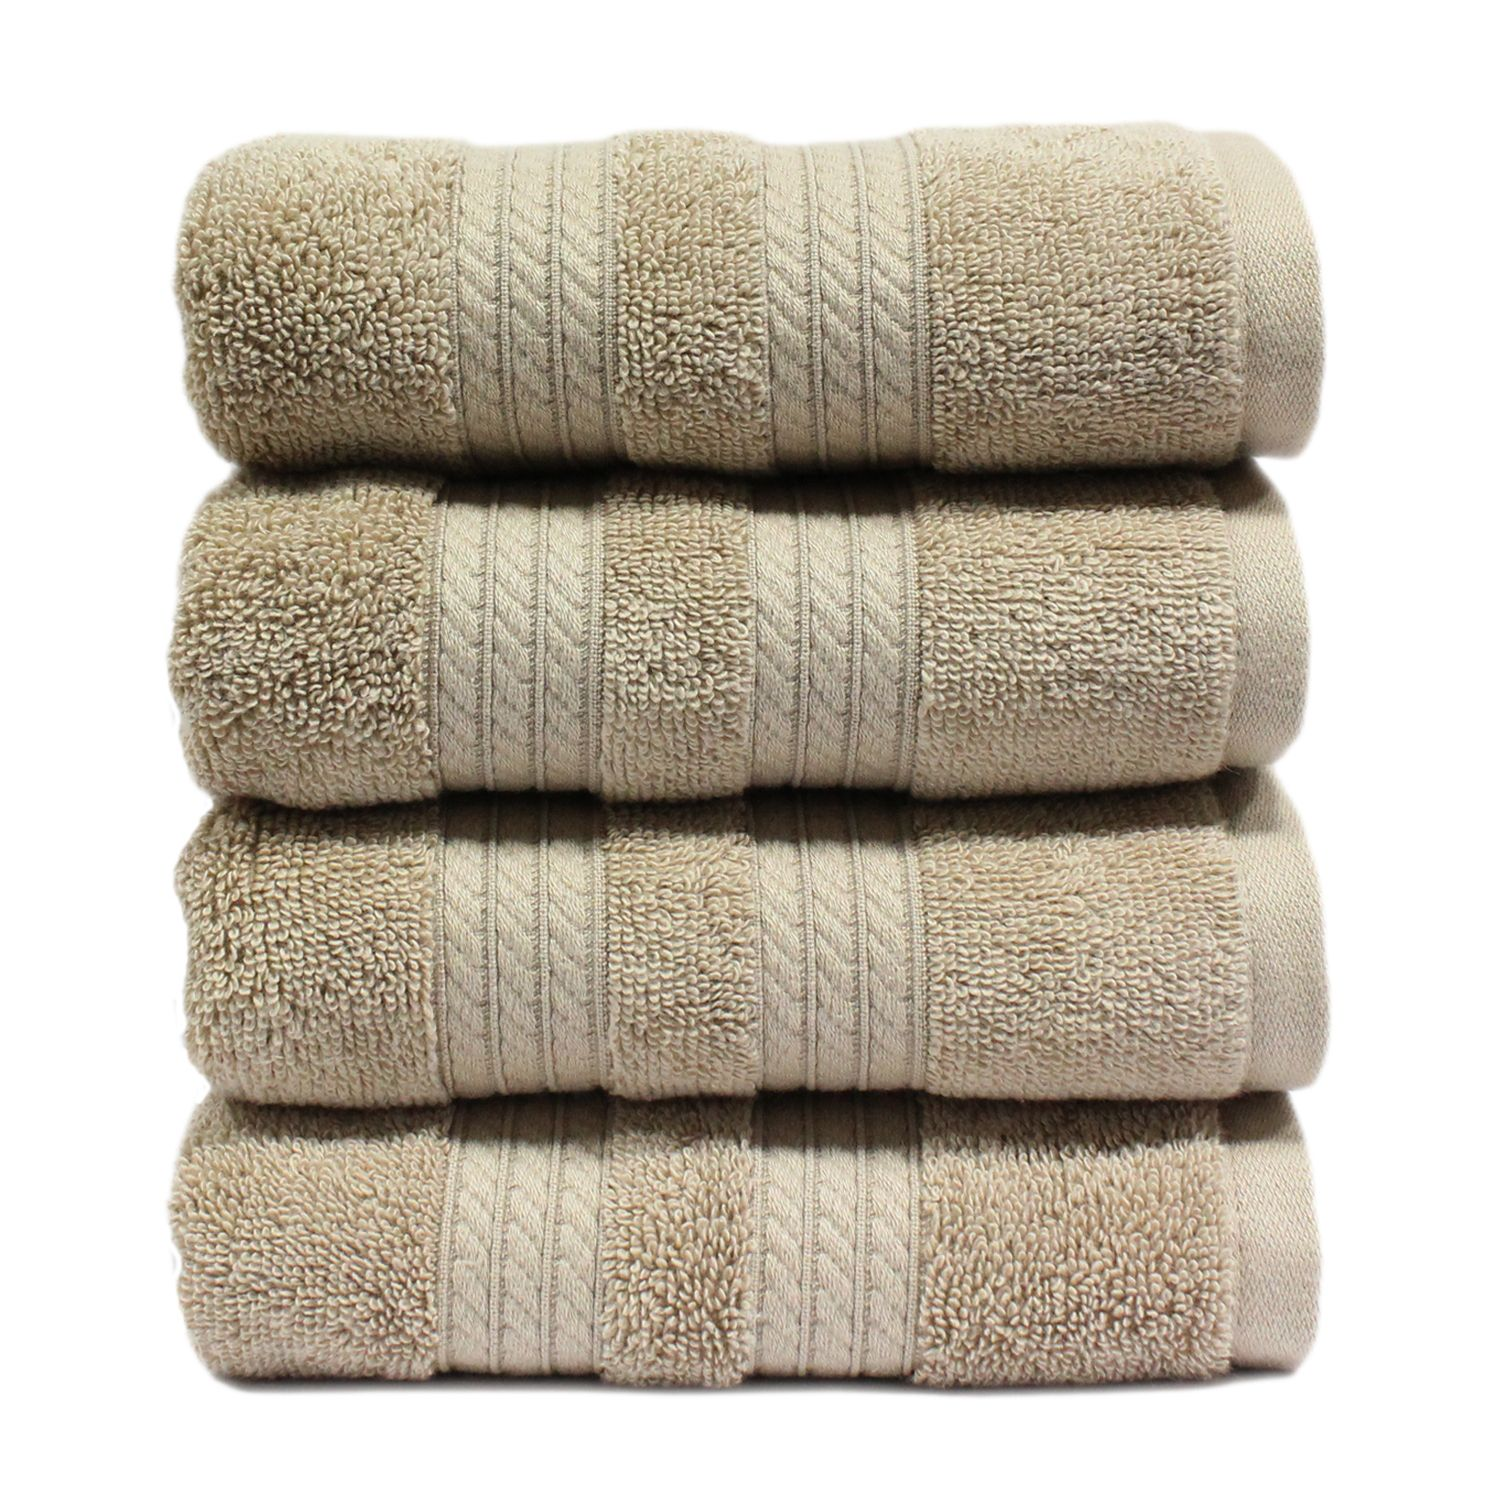 "100% Cotton Luxury Hand Towel, 16"" x 30"" - Linen"